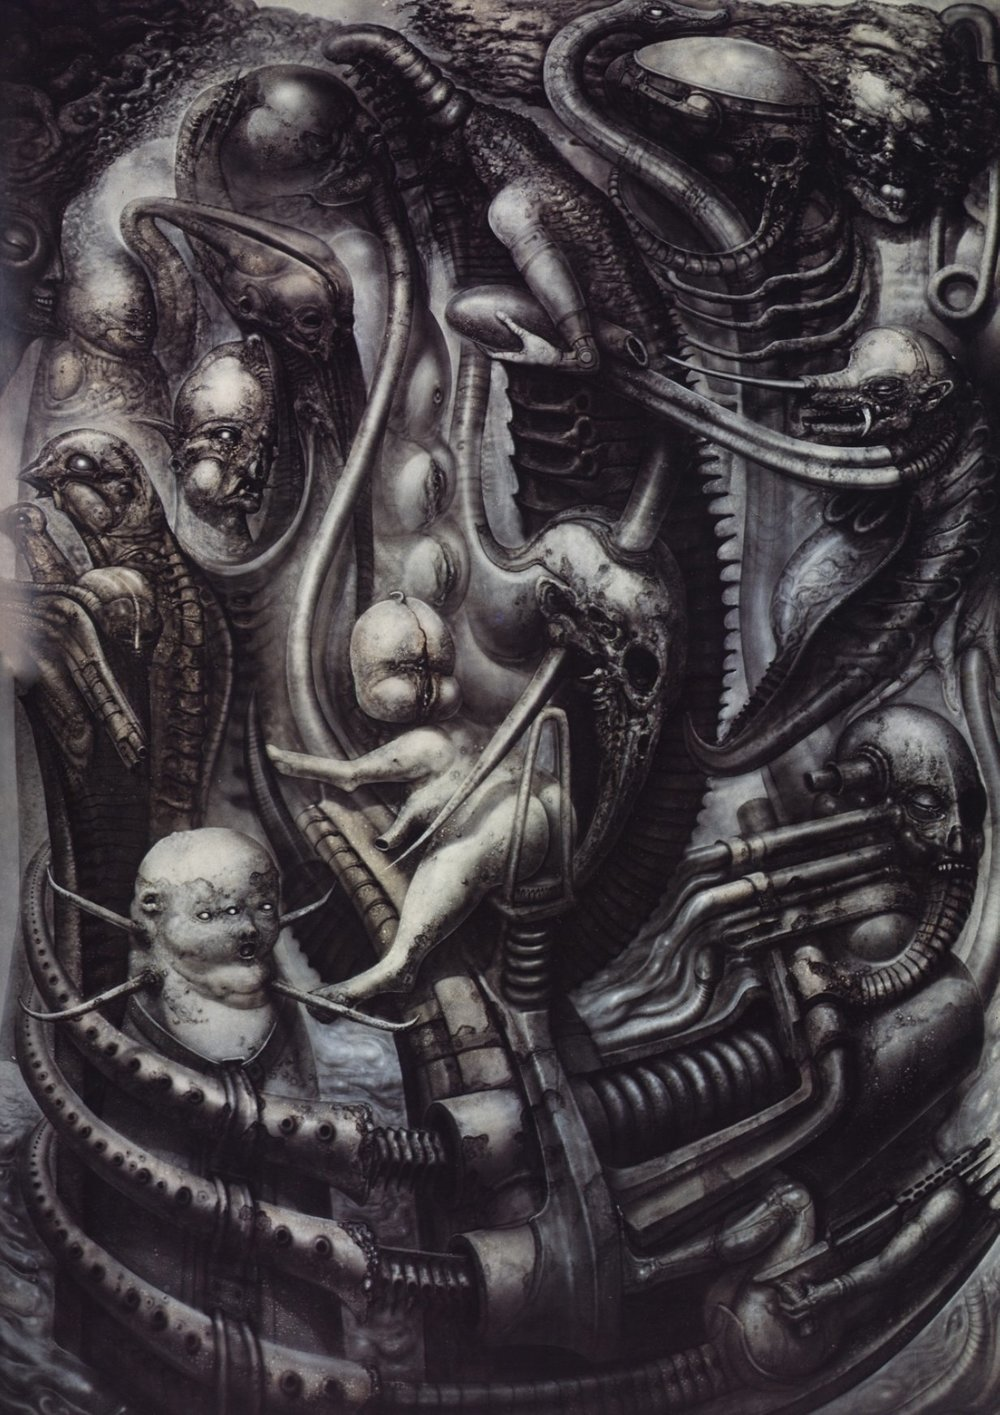 National Park  by   H.R Giger   - this image serves as an accurate example of a single frame of unspeakable horrors.